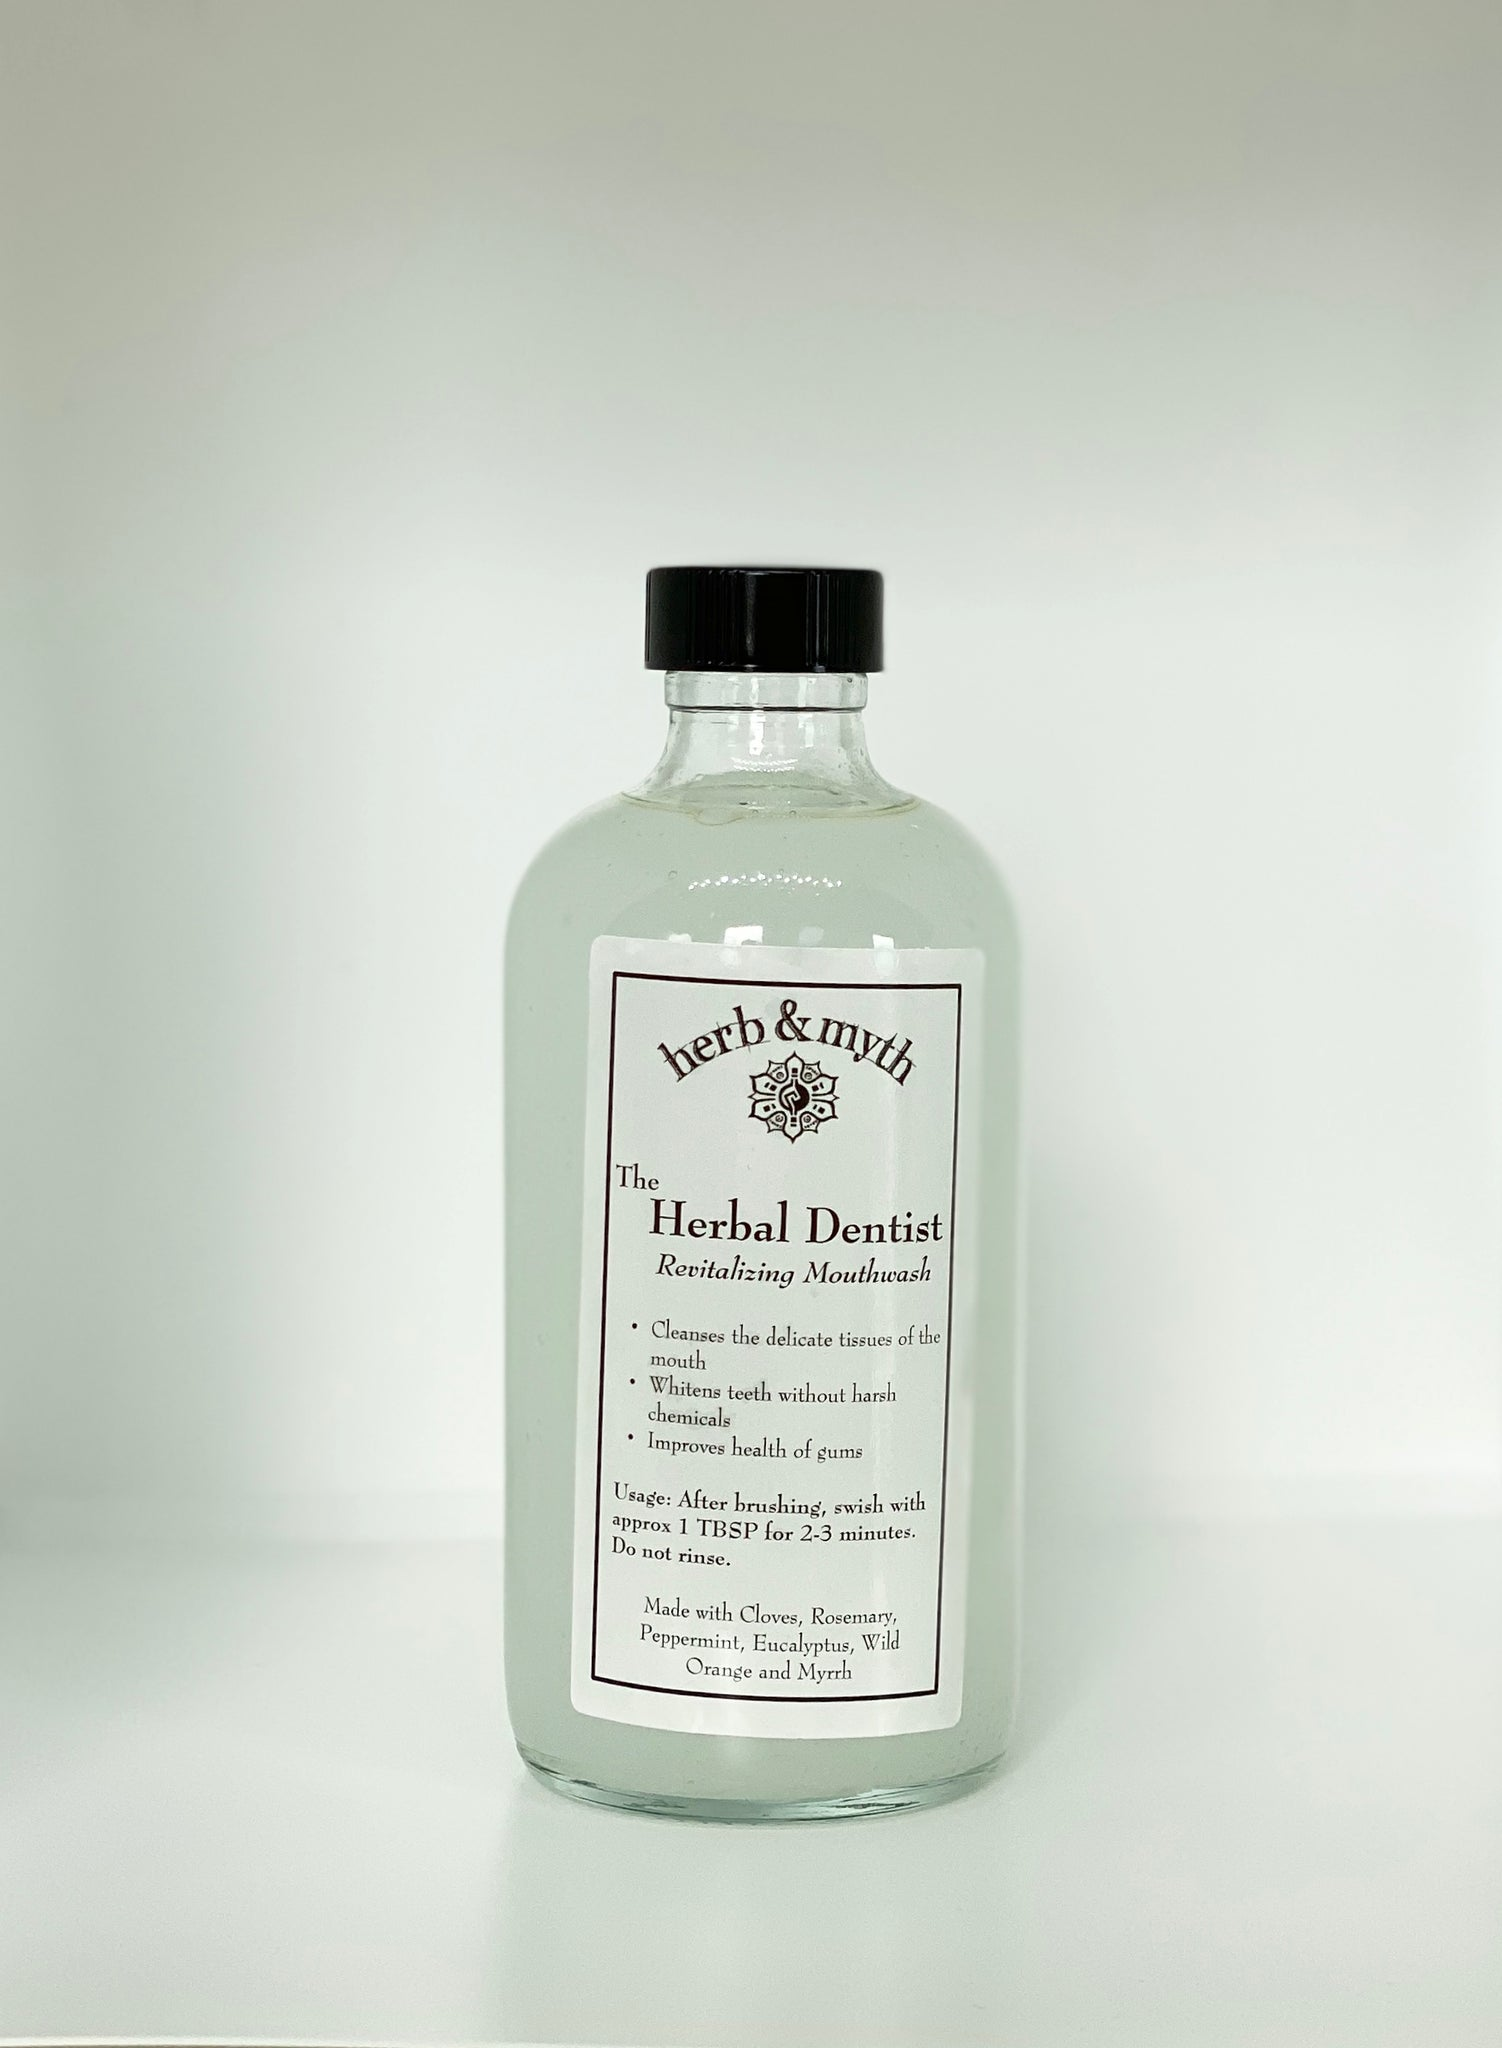 The Herbal Dentist MOUTHWASH (Clear Glass Bottle)